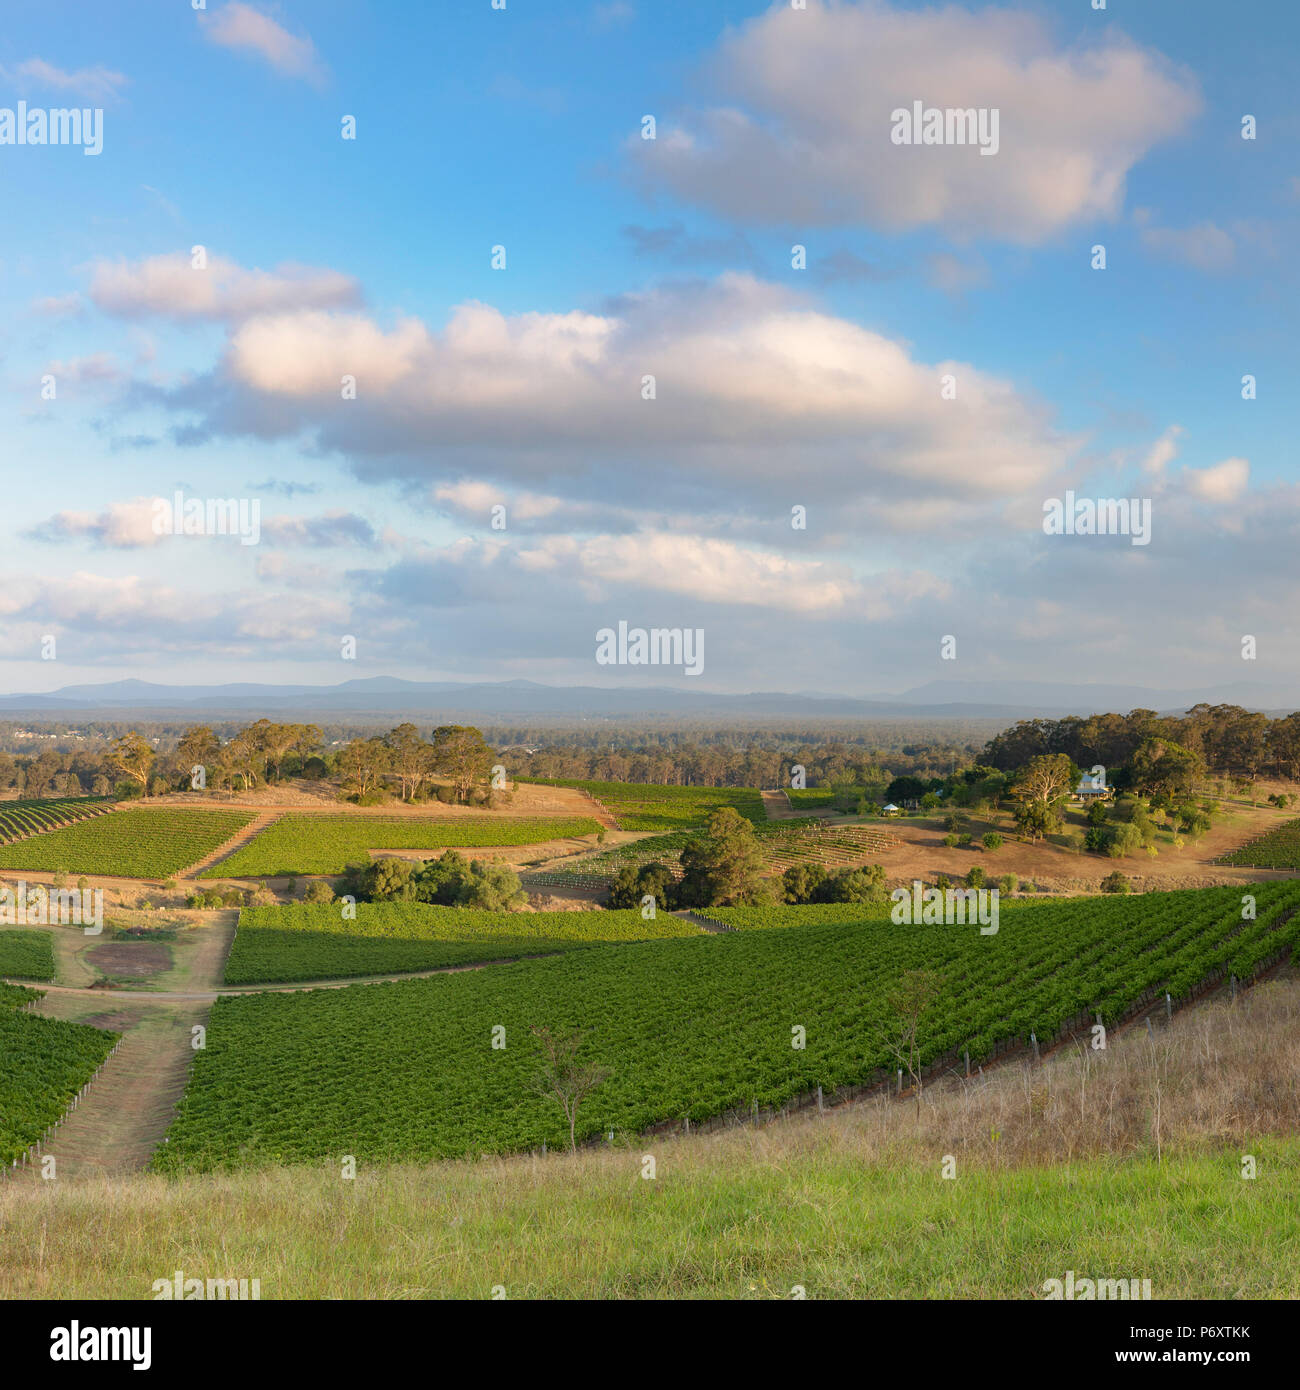 View of vineyards, Hunter Valley, New South Wales, Australia - Stock Image